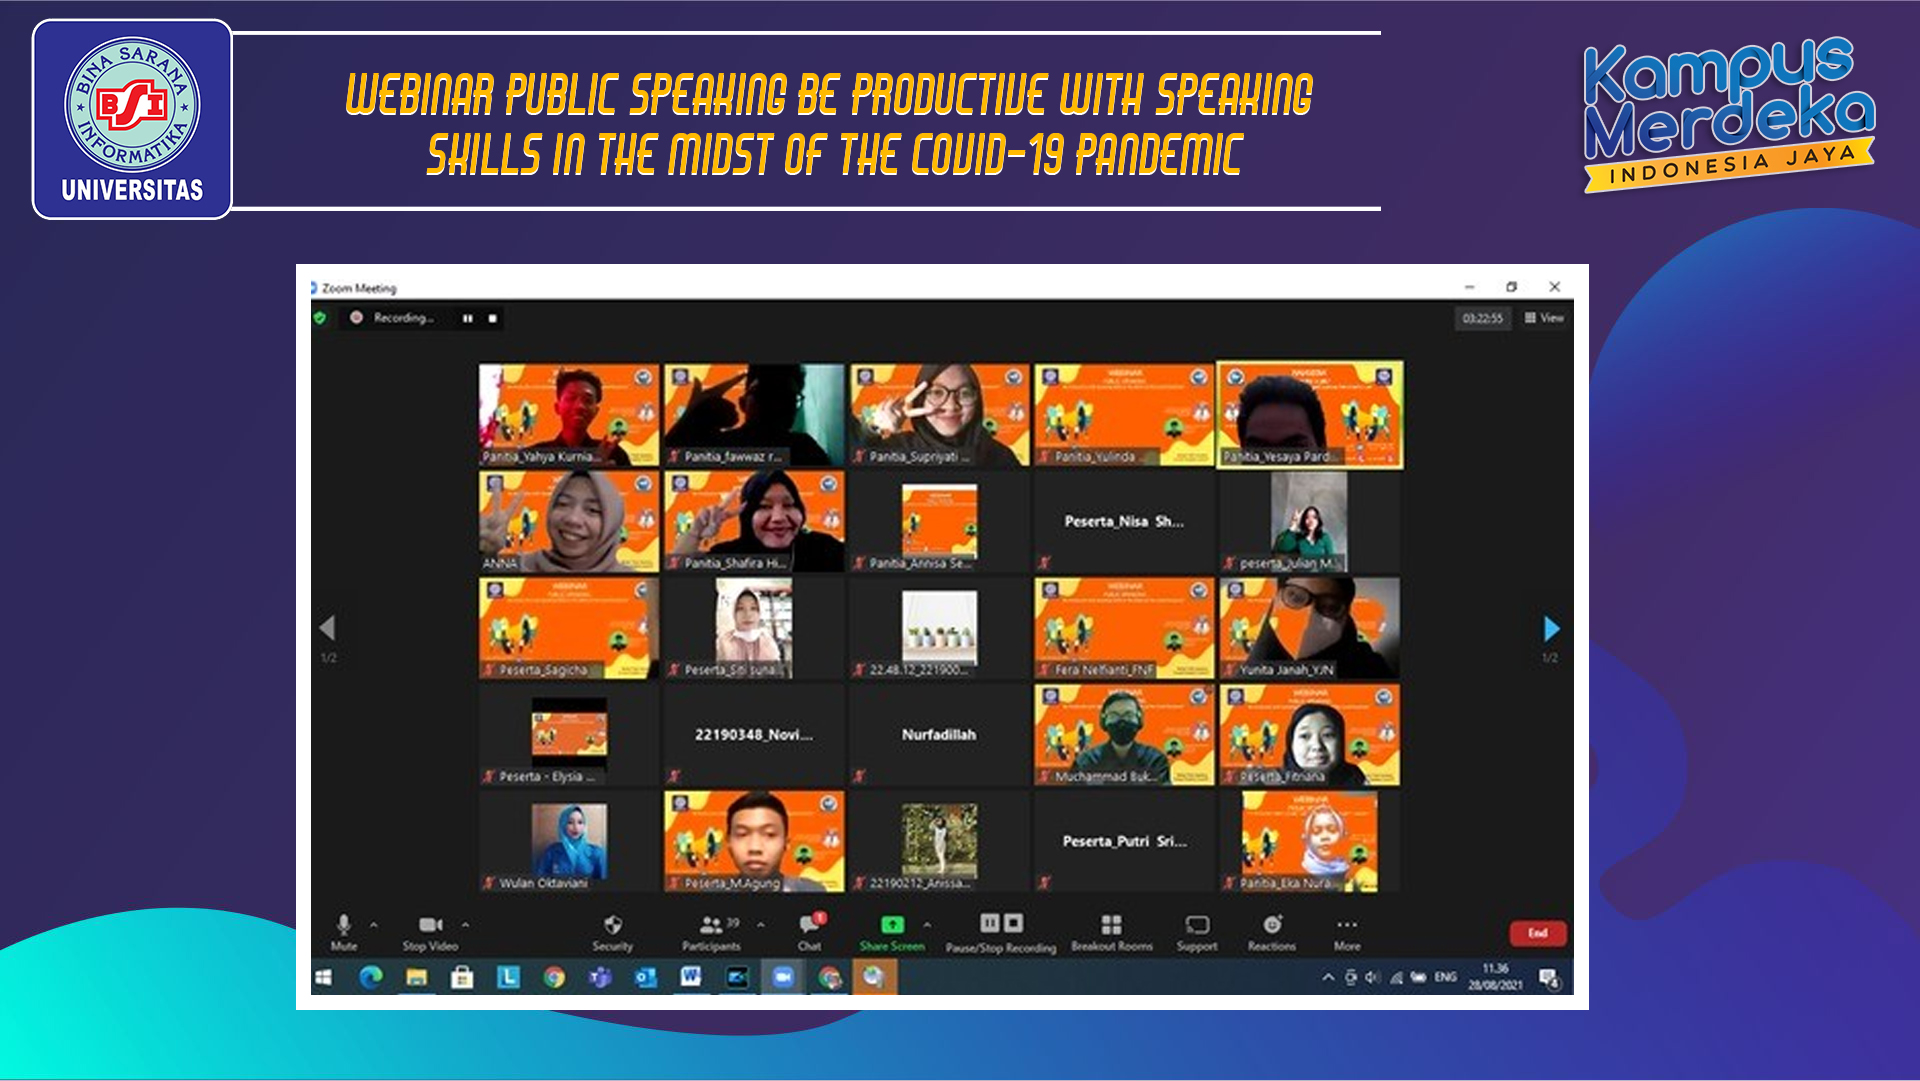 """WEBINAR PUBLIC SPEAKING """"BE PRODUCTIVE WITH SPEAKING SKILLS IN THE MIDST OF THE COVID-19 PANDEMIC"""" OLEH HIMMANIS"""